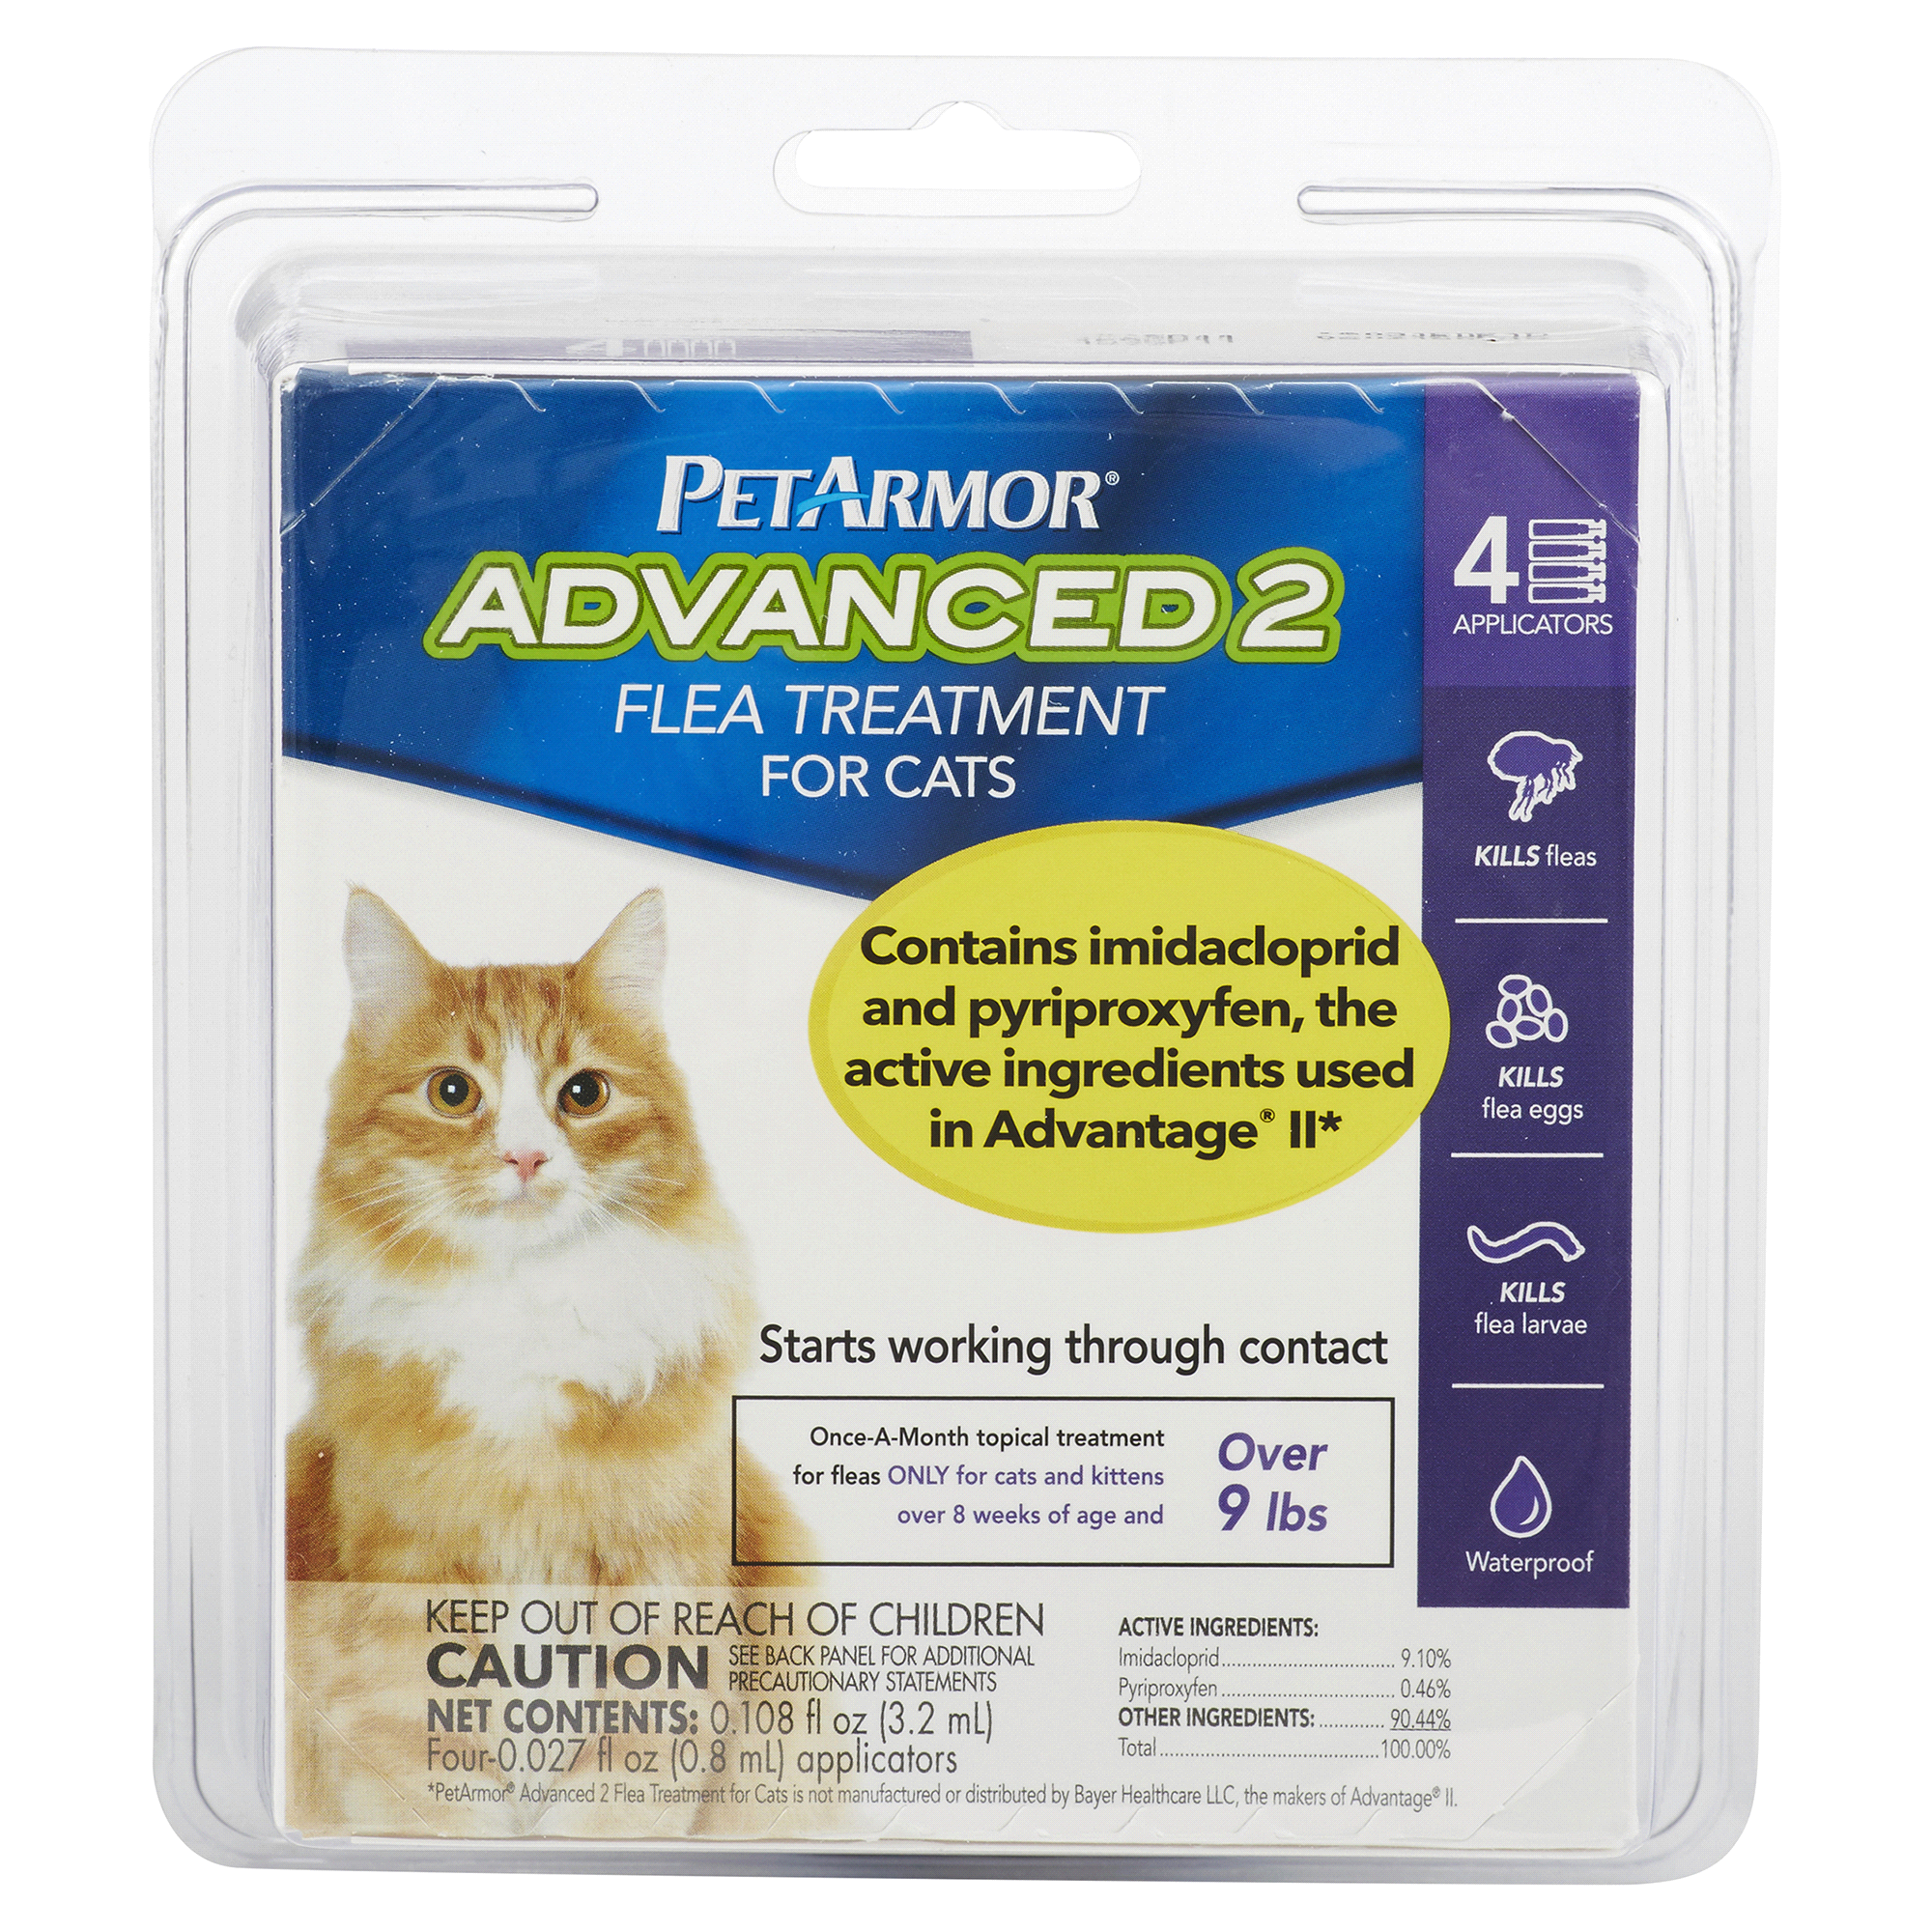 PetArmor Advanced 2 Flea Treatment for Cats 9 lbs 4 pk